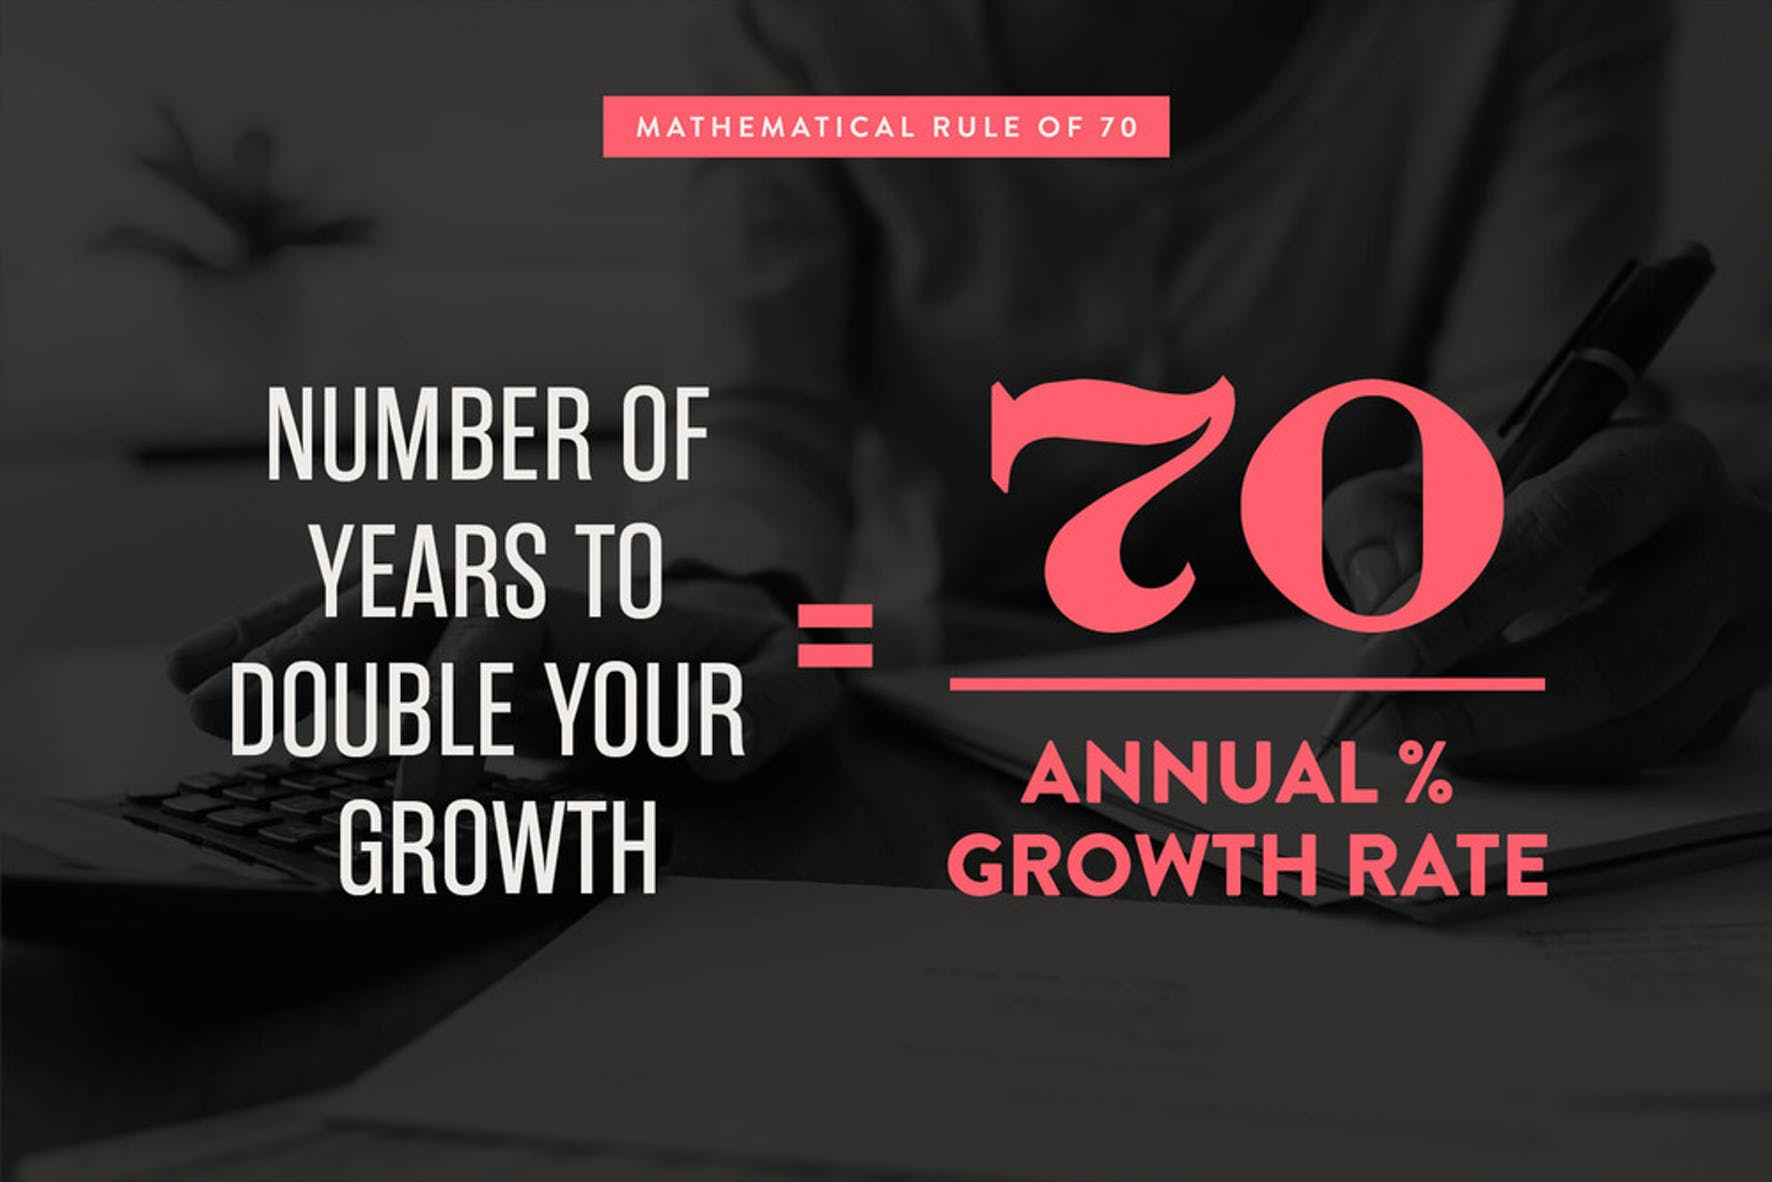 mathematical rule of 70 chart used for financial growth